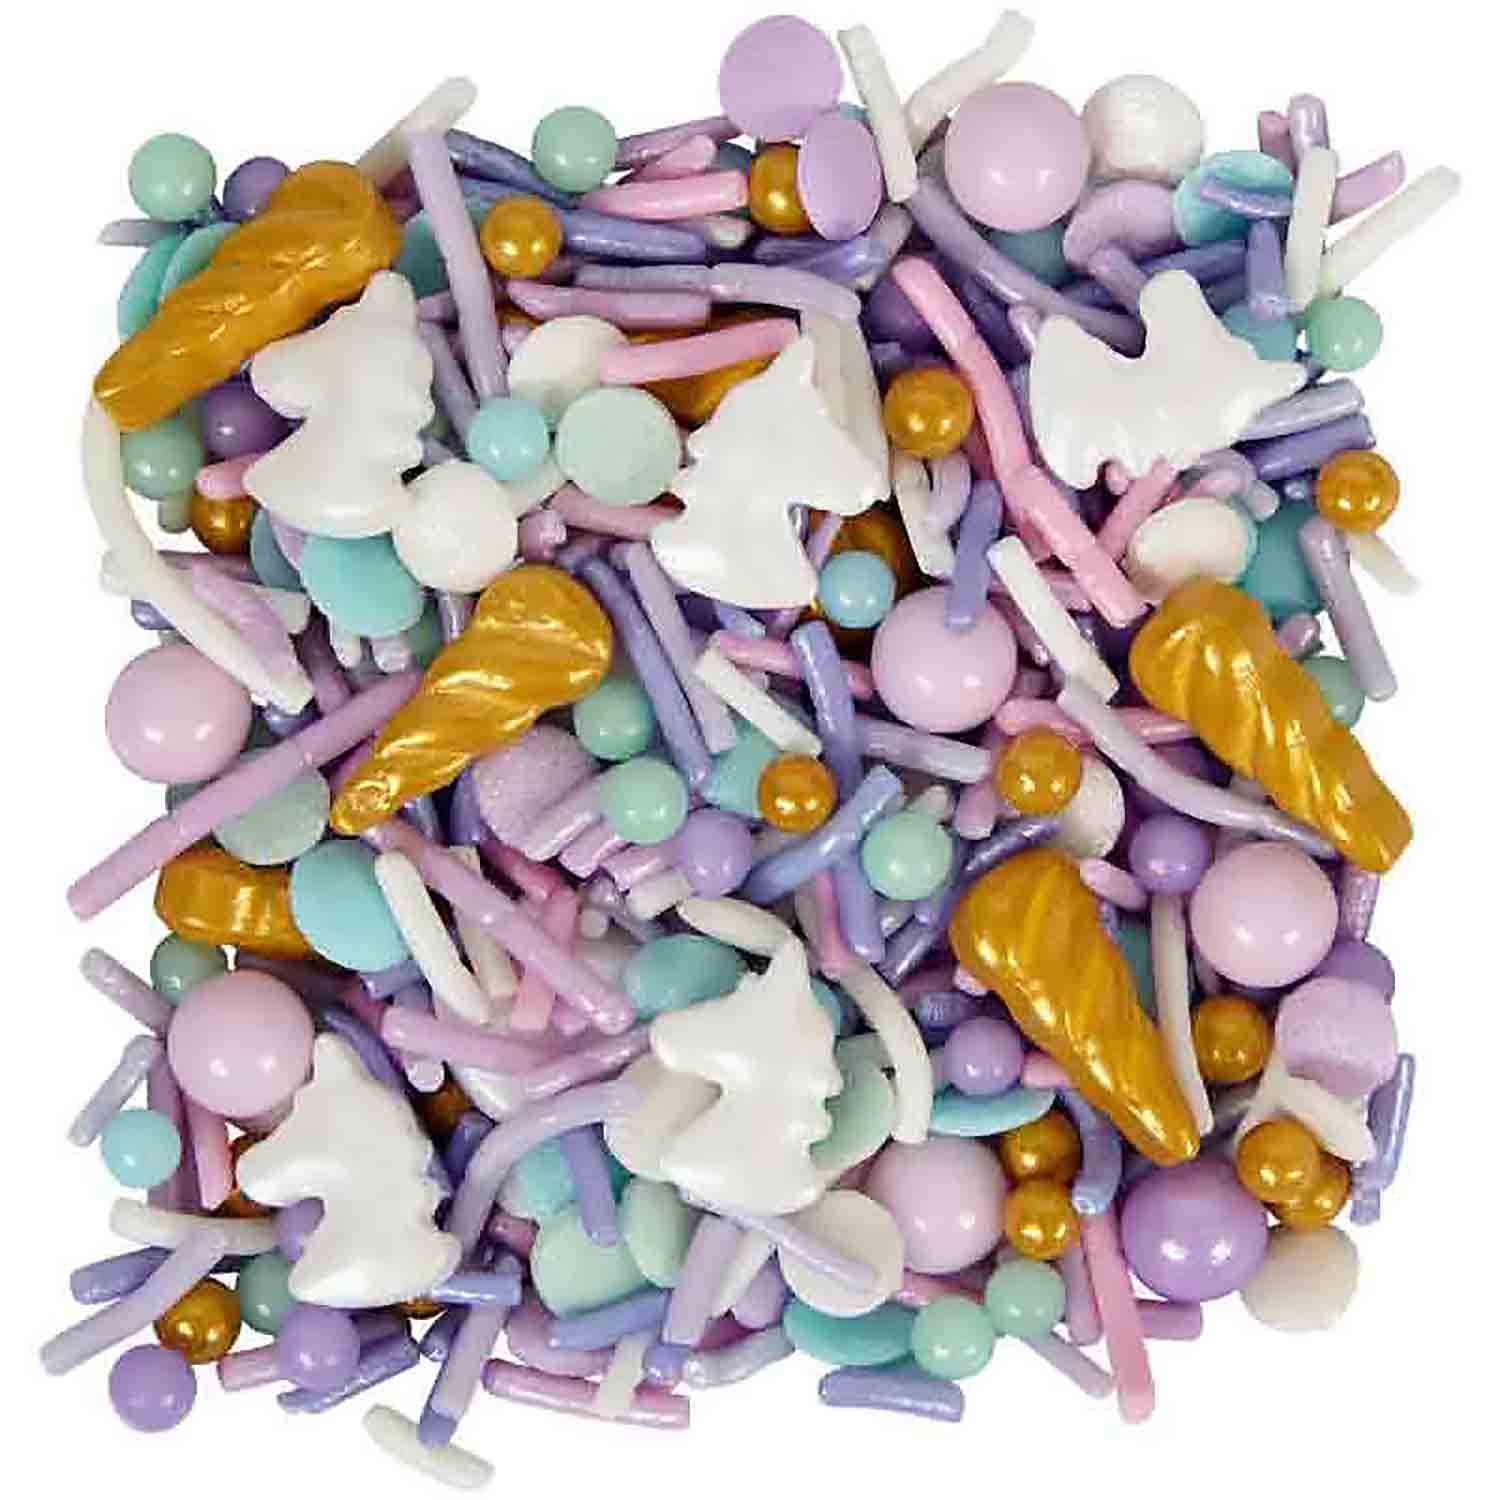 Unicorn Party Sprinkles Mix, 10 oz.